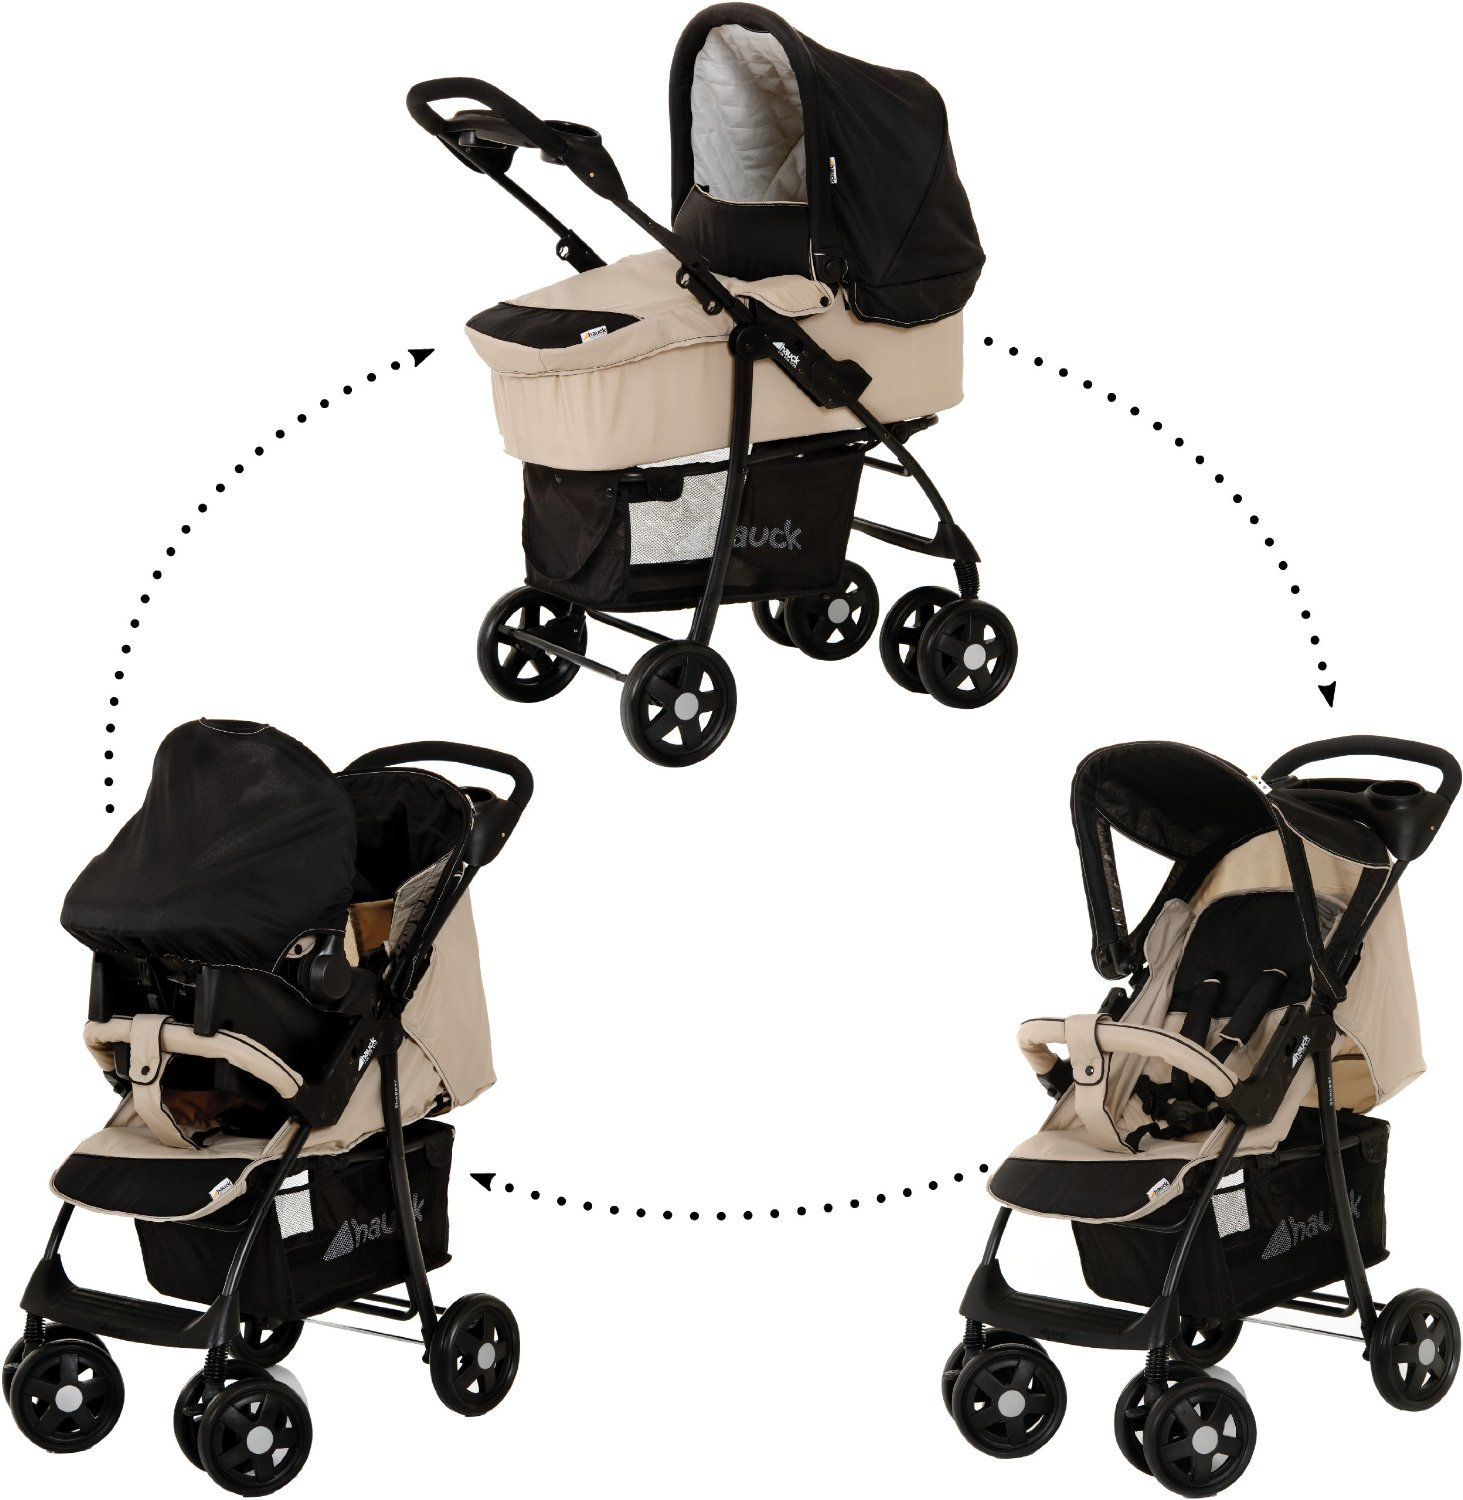 Hauck Shopper Trio Set Almond/Caviar - Stroller, Carrycot and Carseat Adjustable Backrest Shopping Basket Included